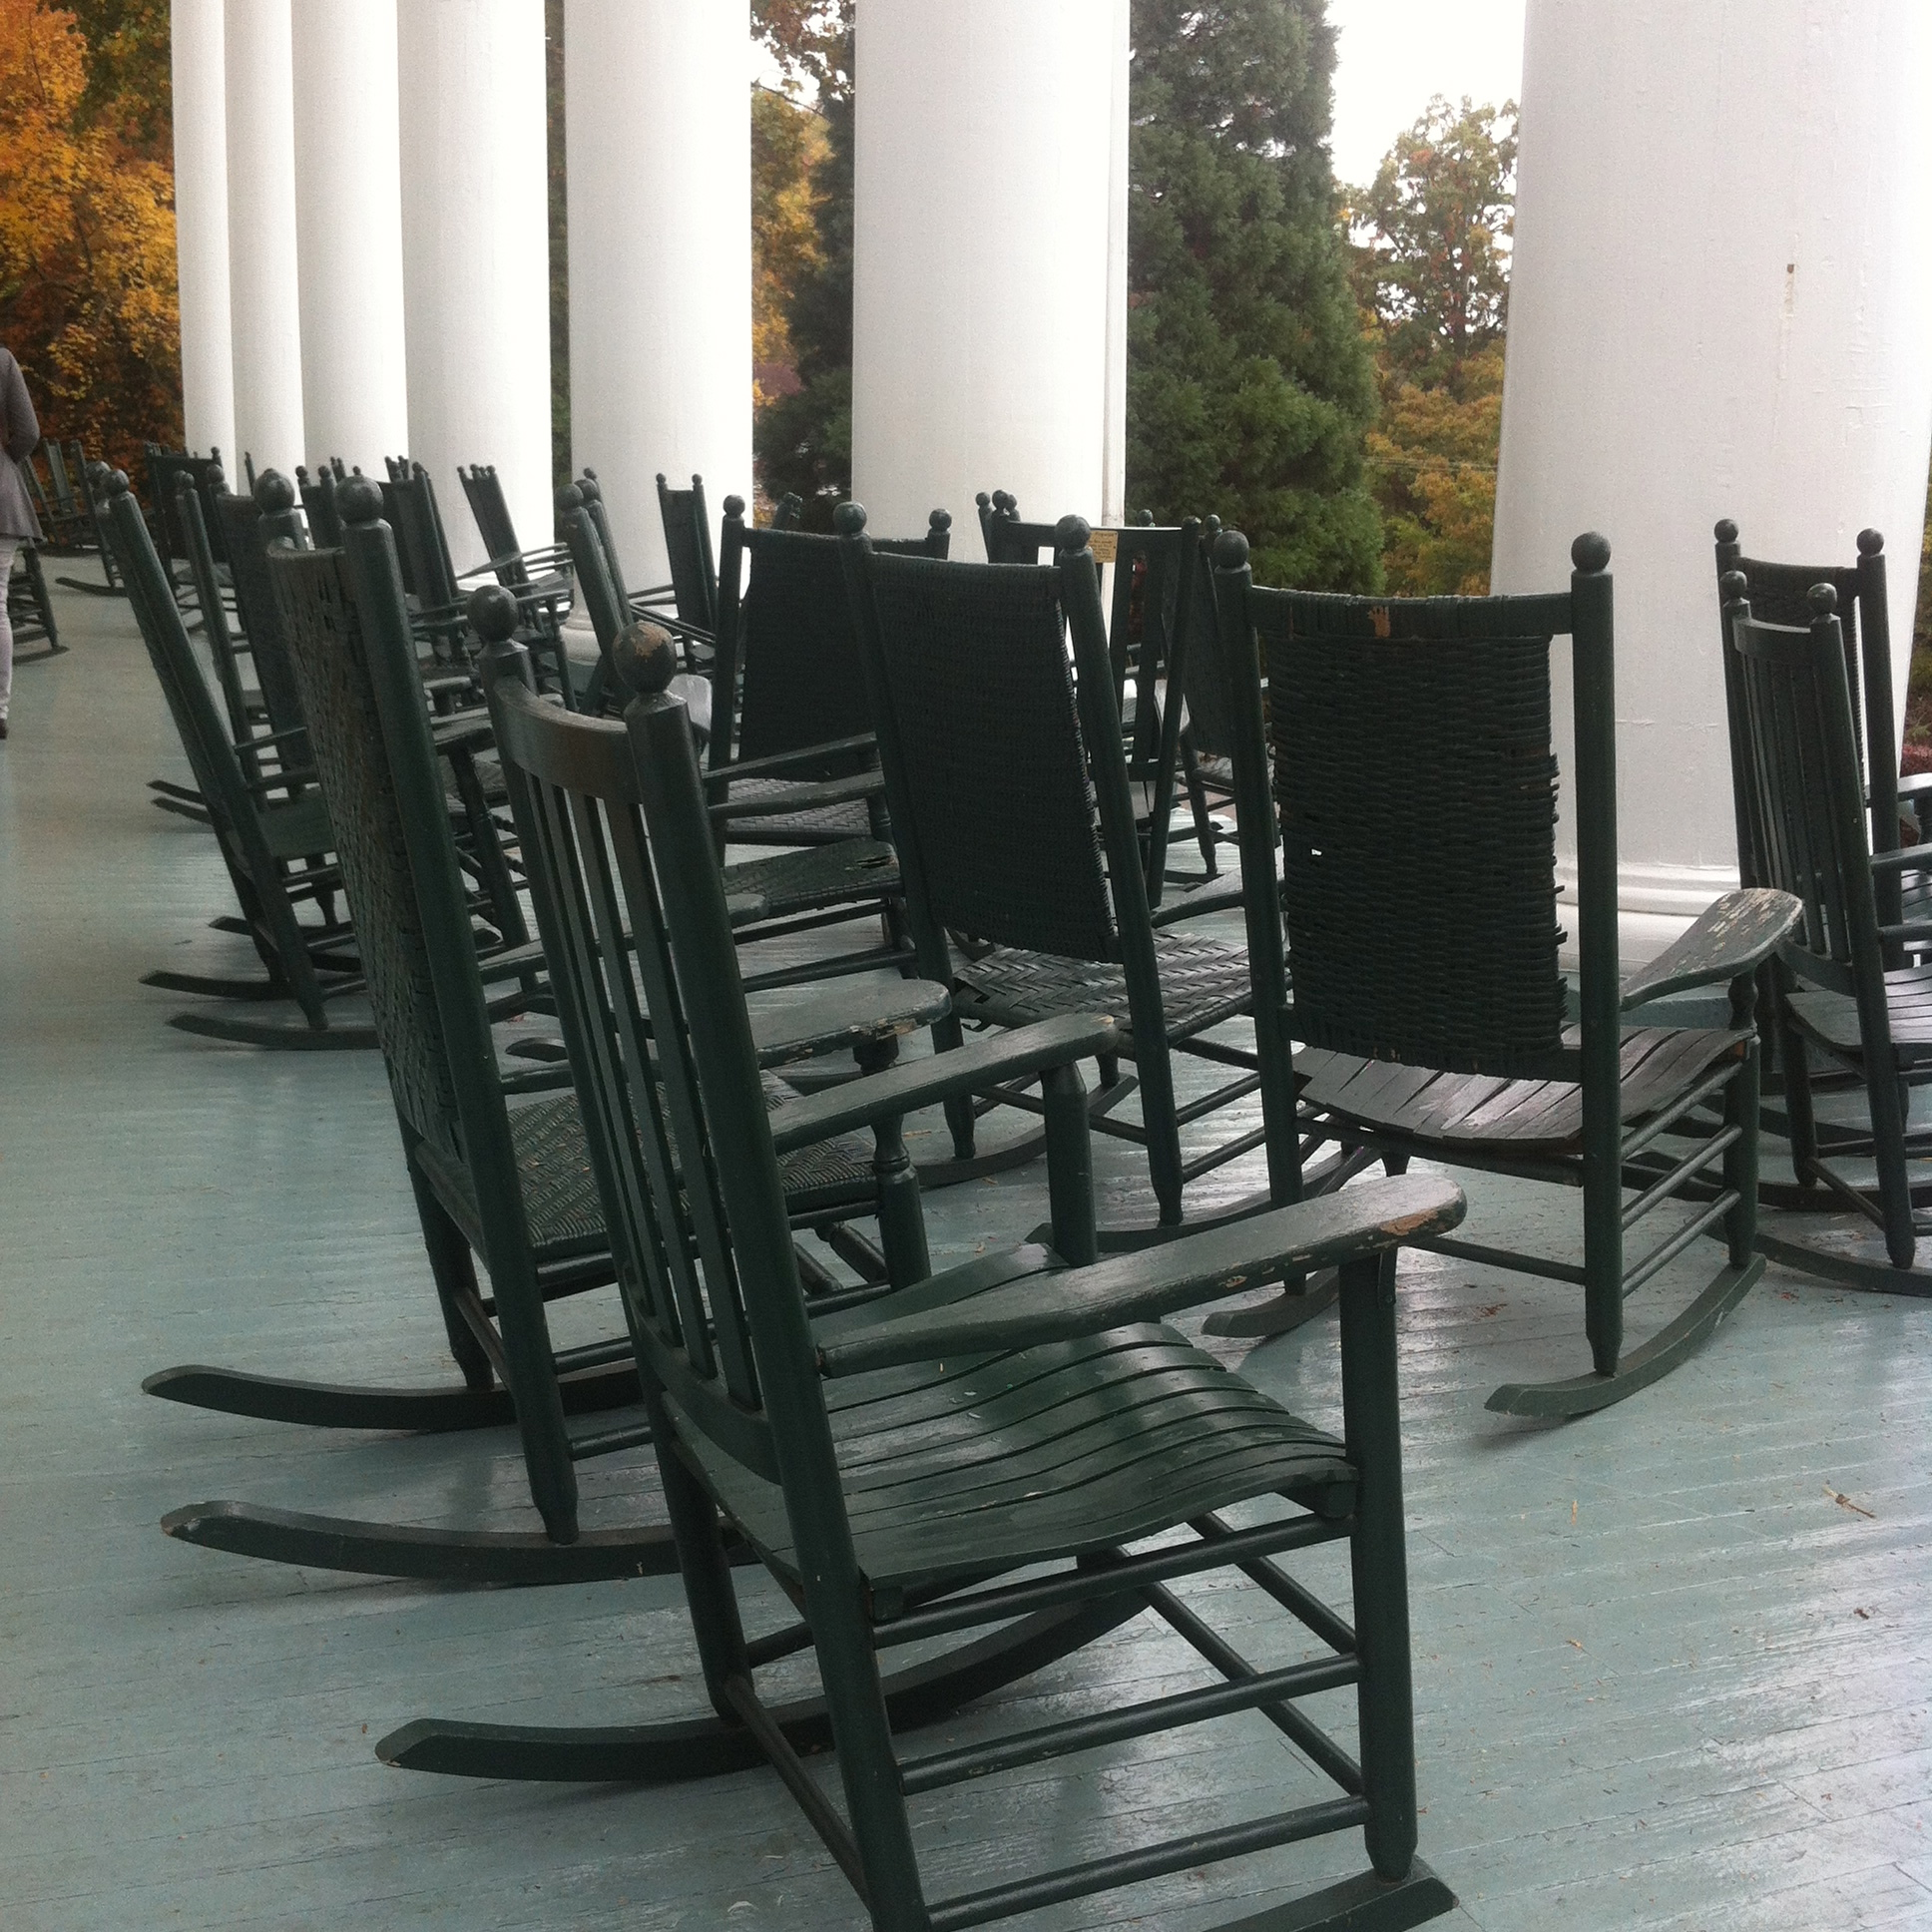 Rocking Chairs On The Porch Of The Blue Ridge Lee Hall Of Black Mountain College Near Asheville North Carolina